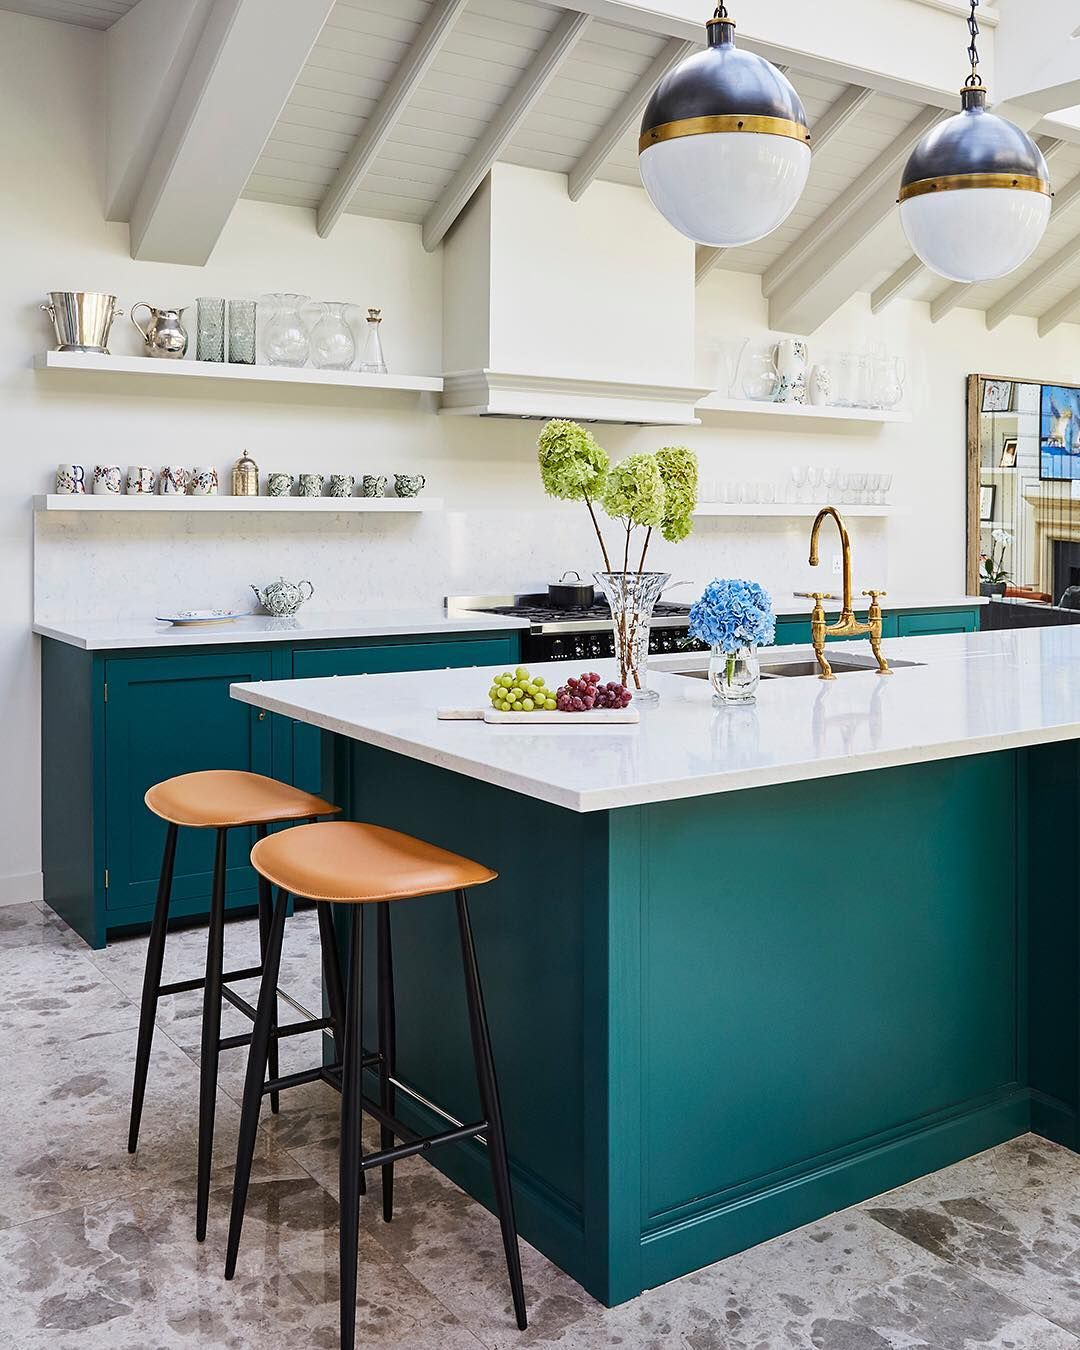 Made Com On Instagram Teal Taupe And More We Ve Got This Season S Ultimate Colour Power Couples Find Out Teal Kitchen Cabinets Teal Kitchen Kitchen Trends